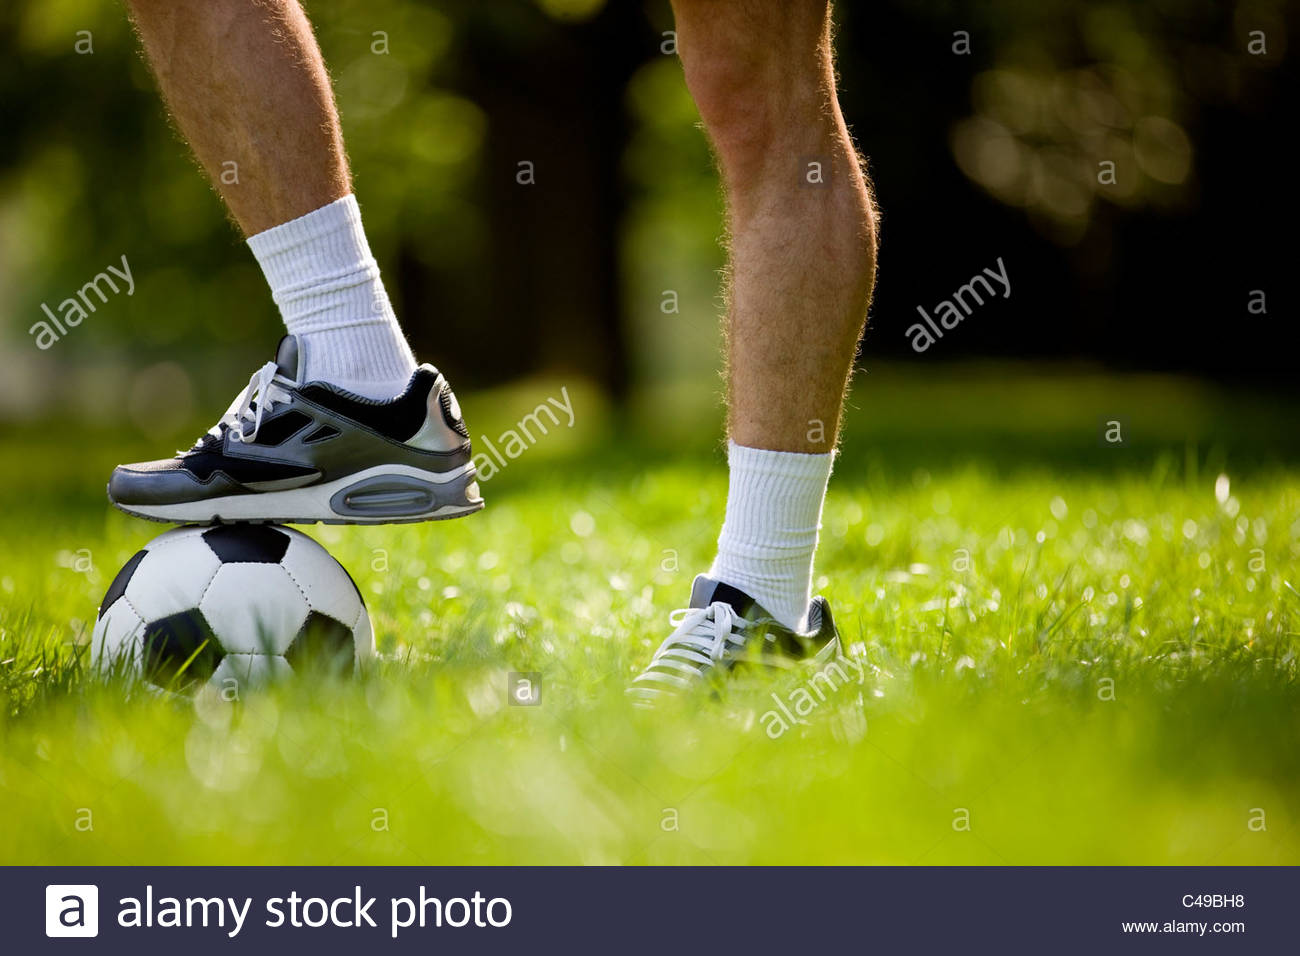 A young man with his foot on a football, close-up - Stock Image